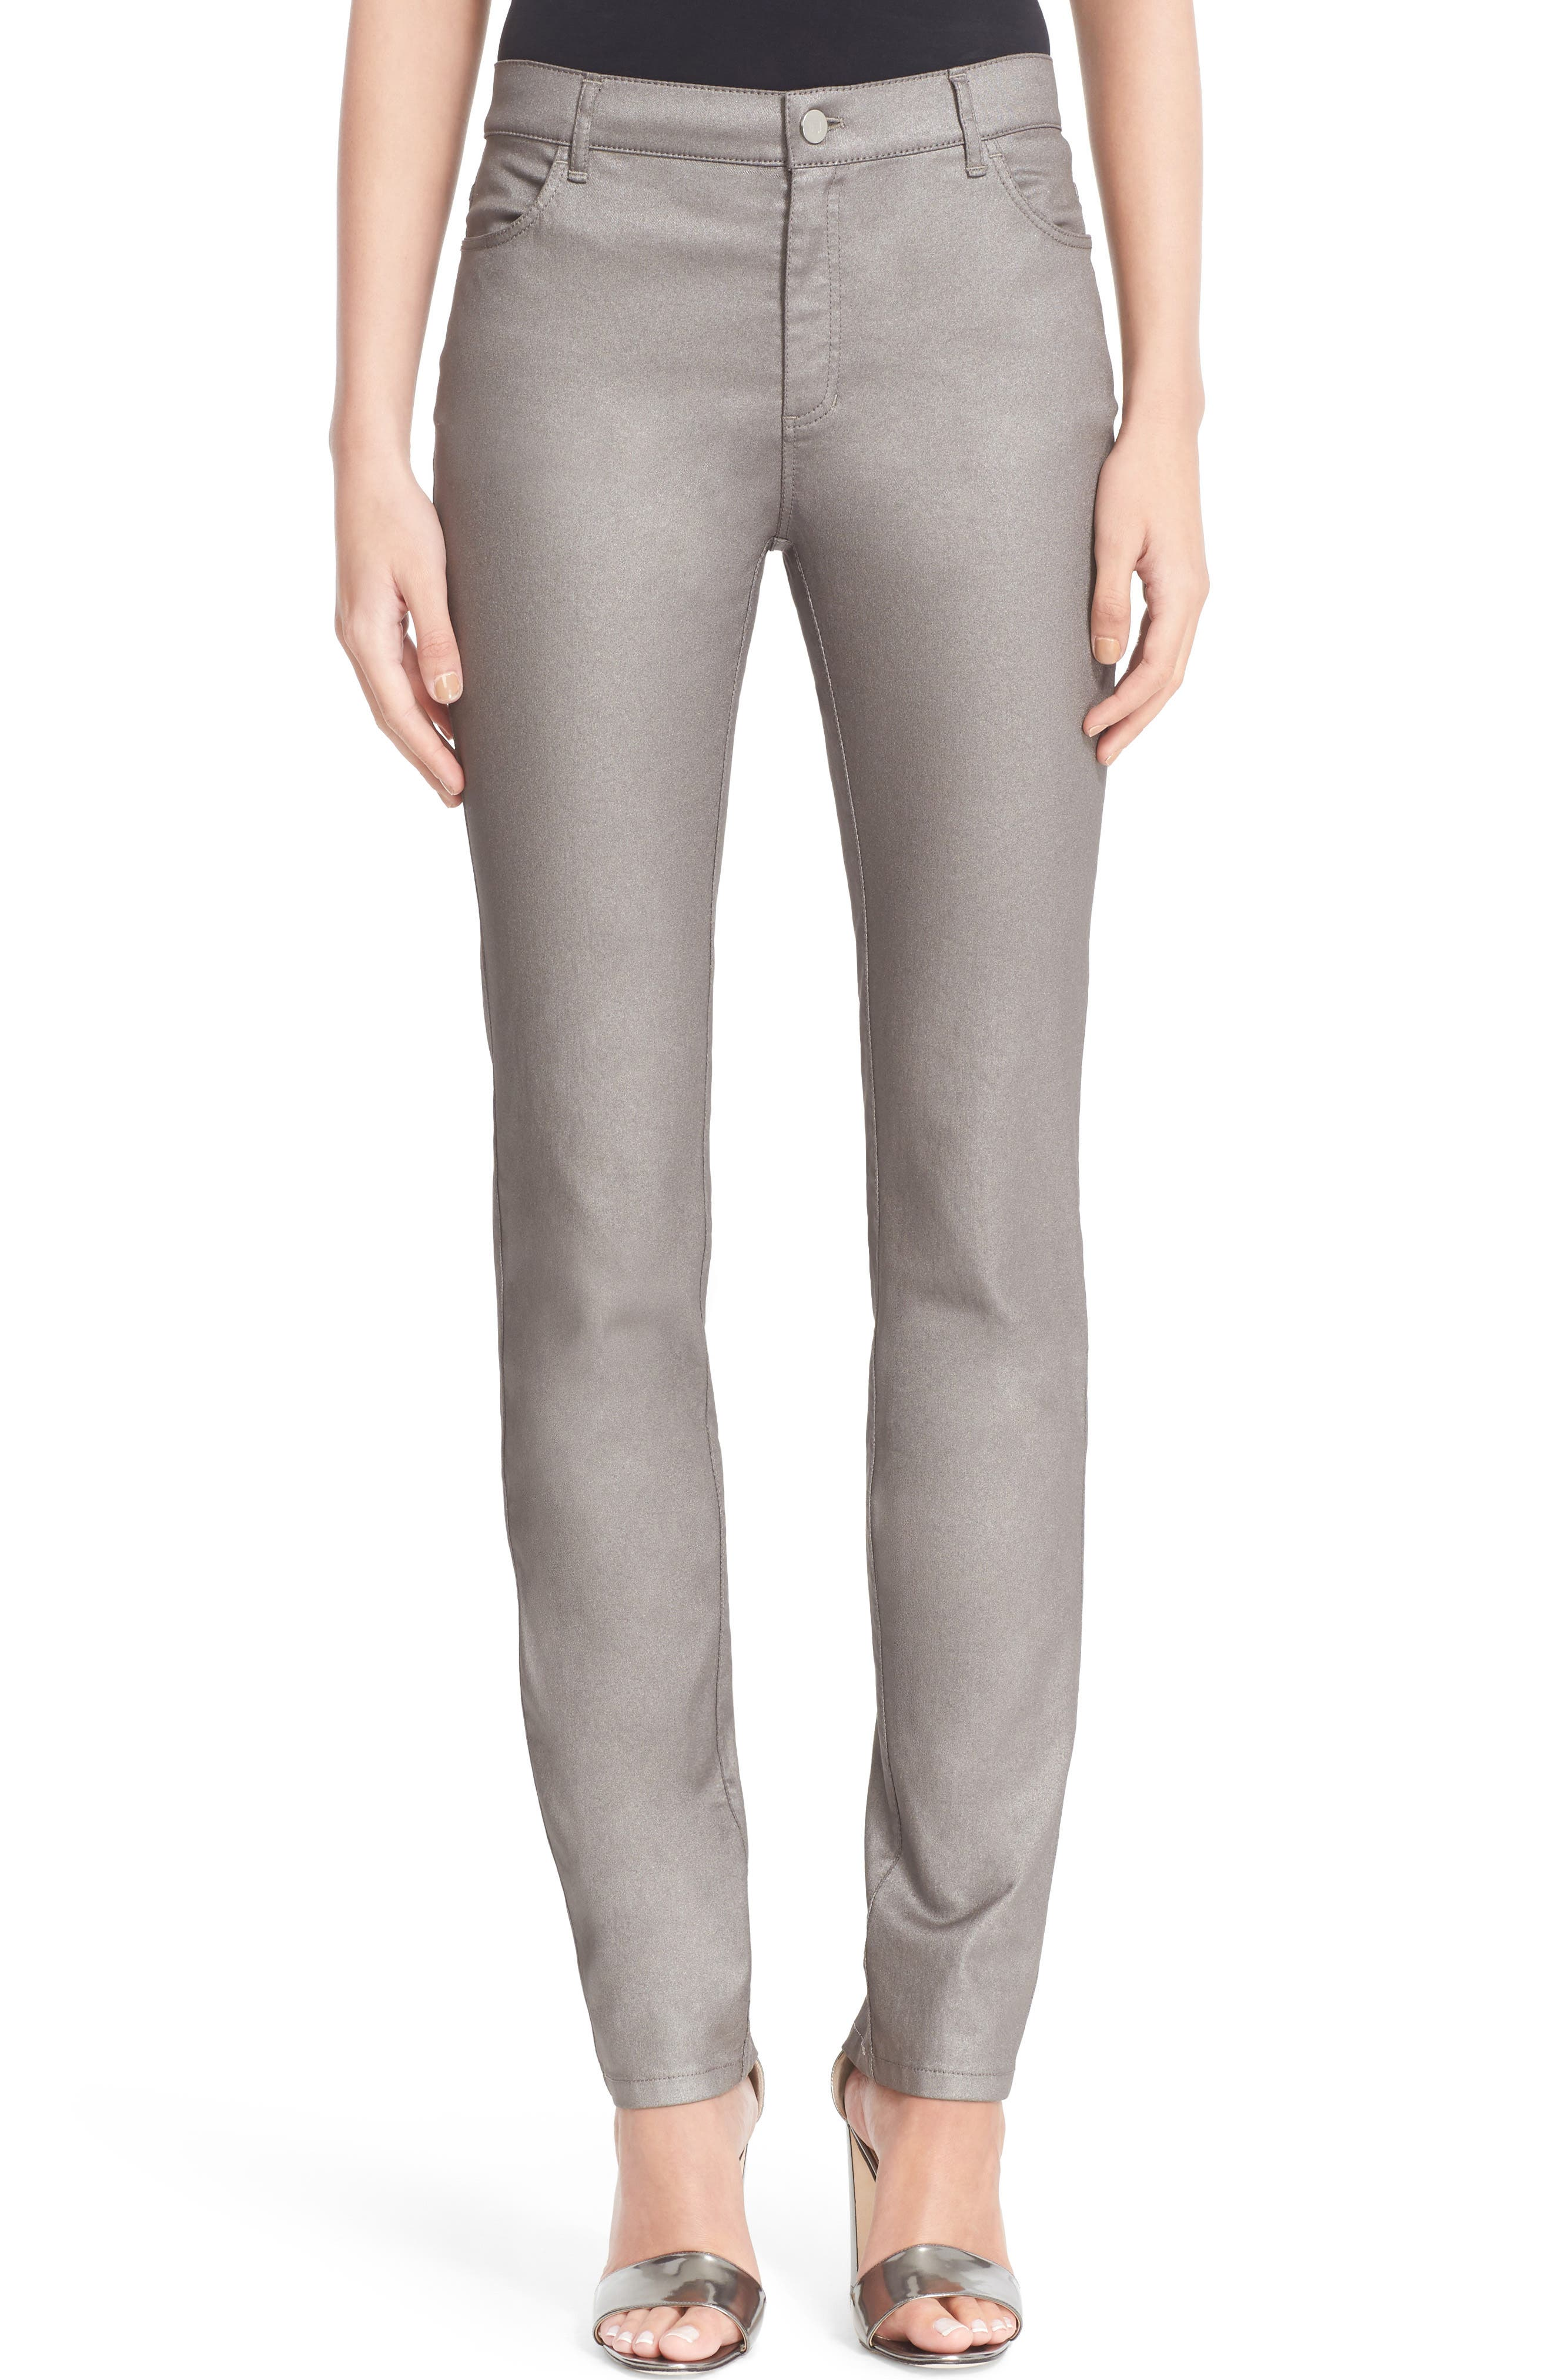 LAFAYETTE 148 NEW YORK Curvy Fit Skinny Jeans, Main, color, SILVER